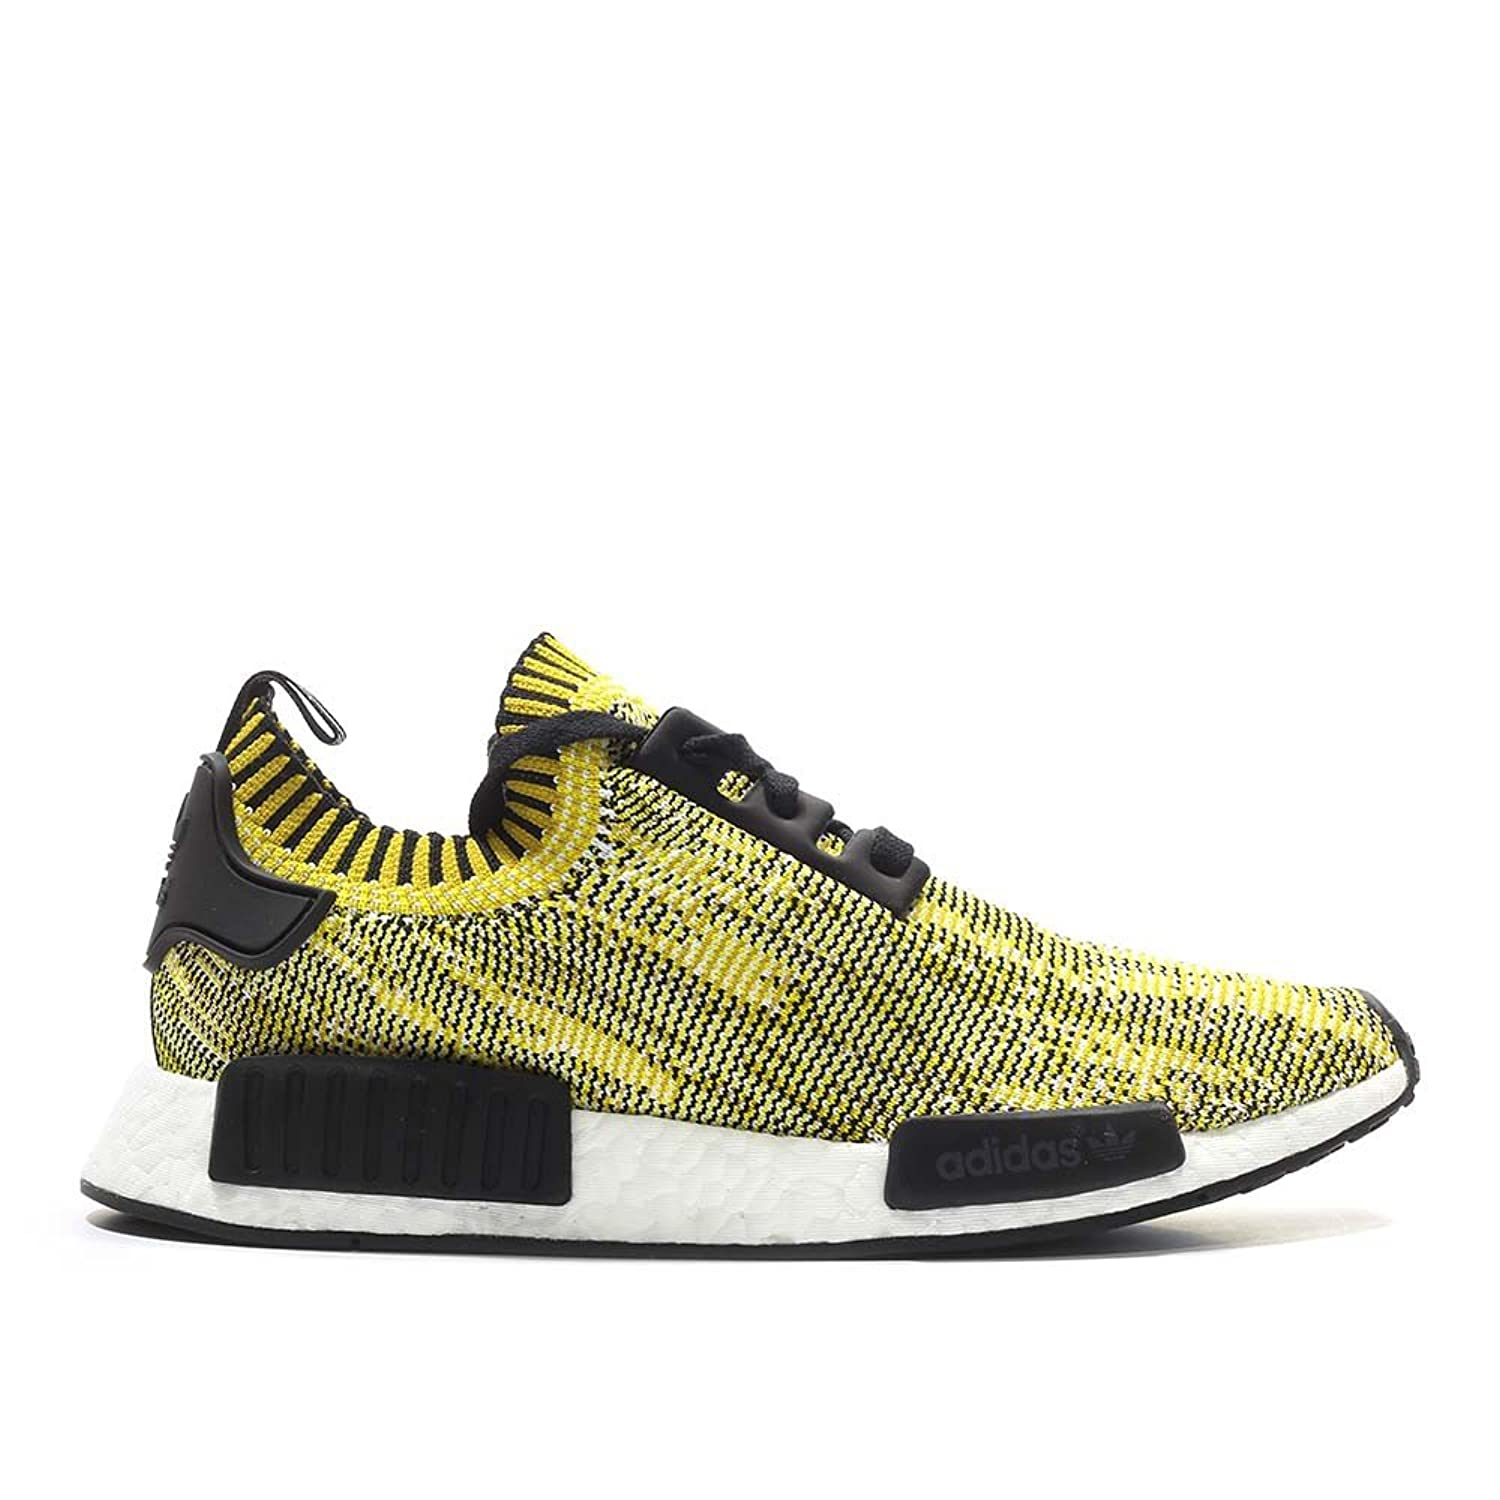 adidas nmd c1 mens yellow